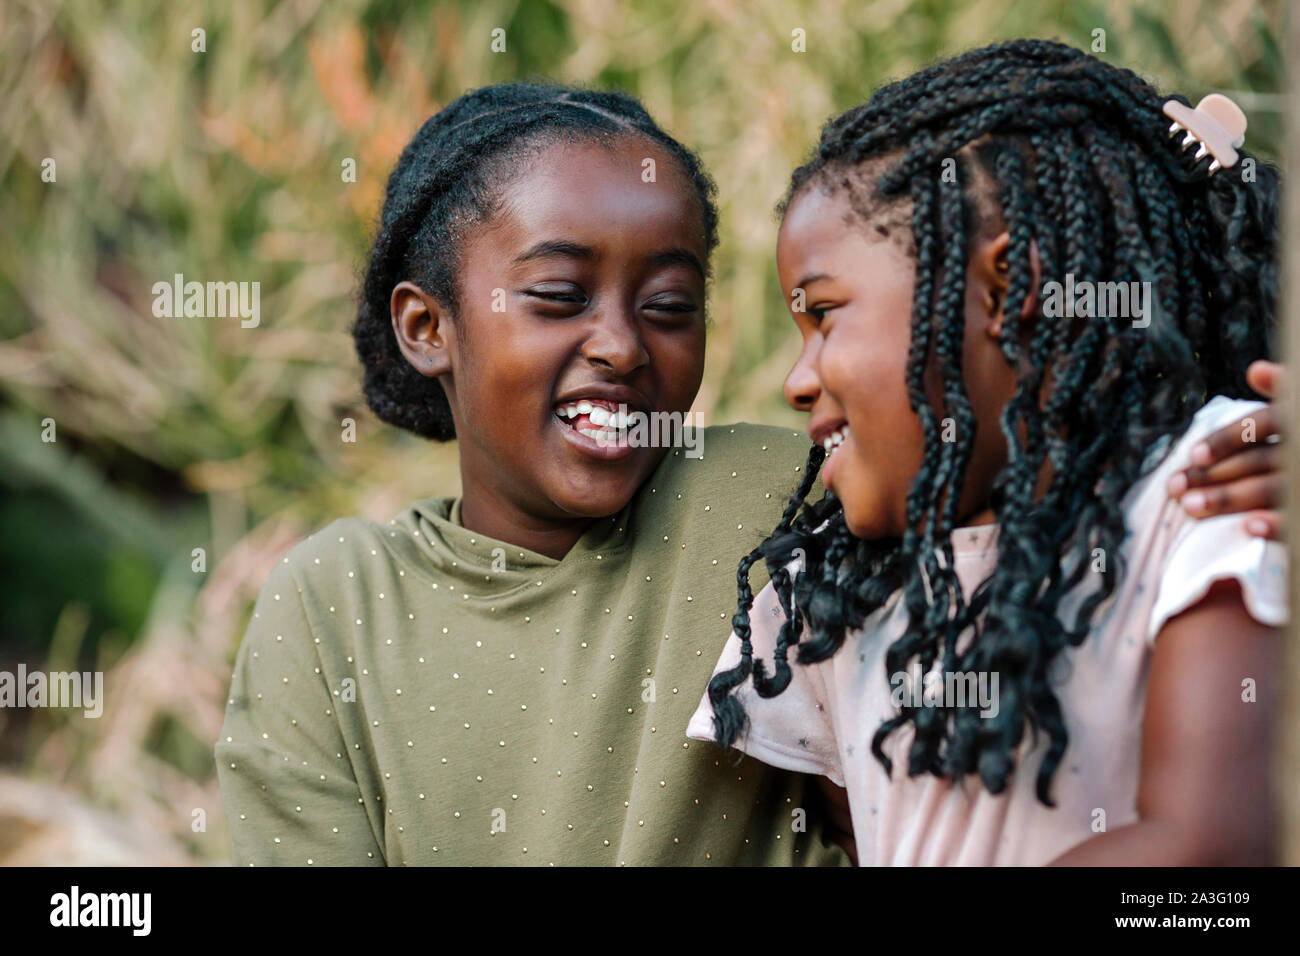 Beau rire black sisters embracing outdoors Banque D'Images